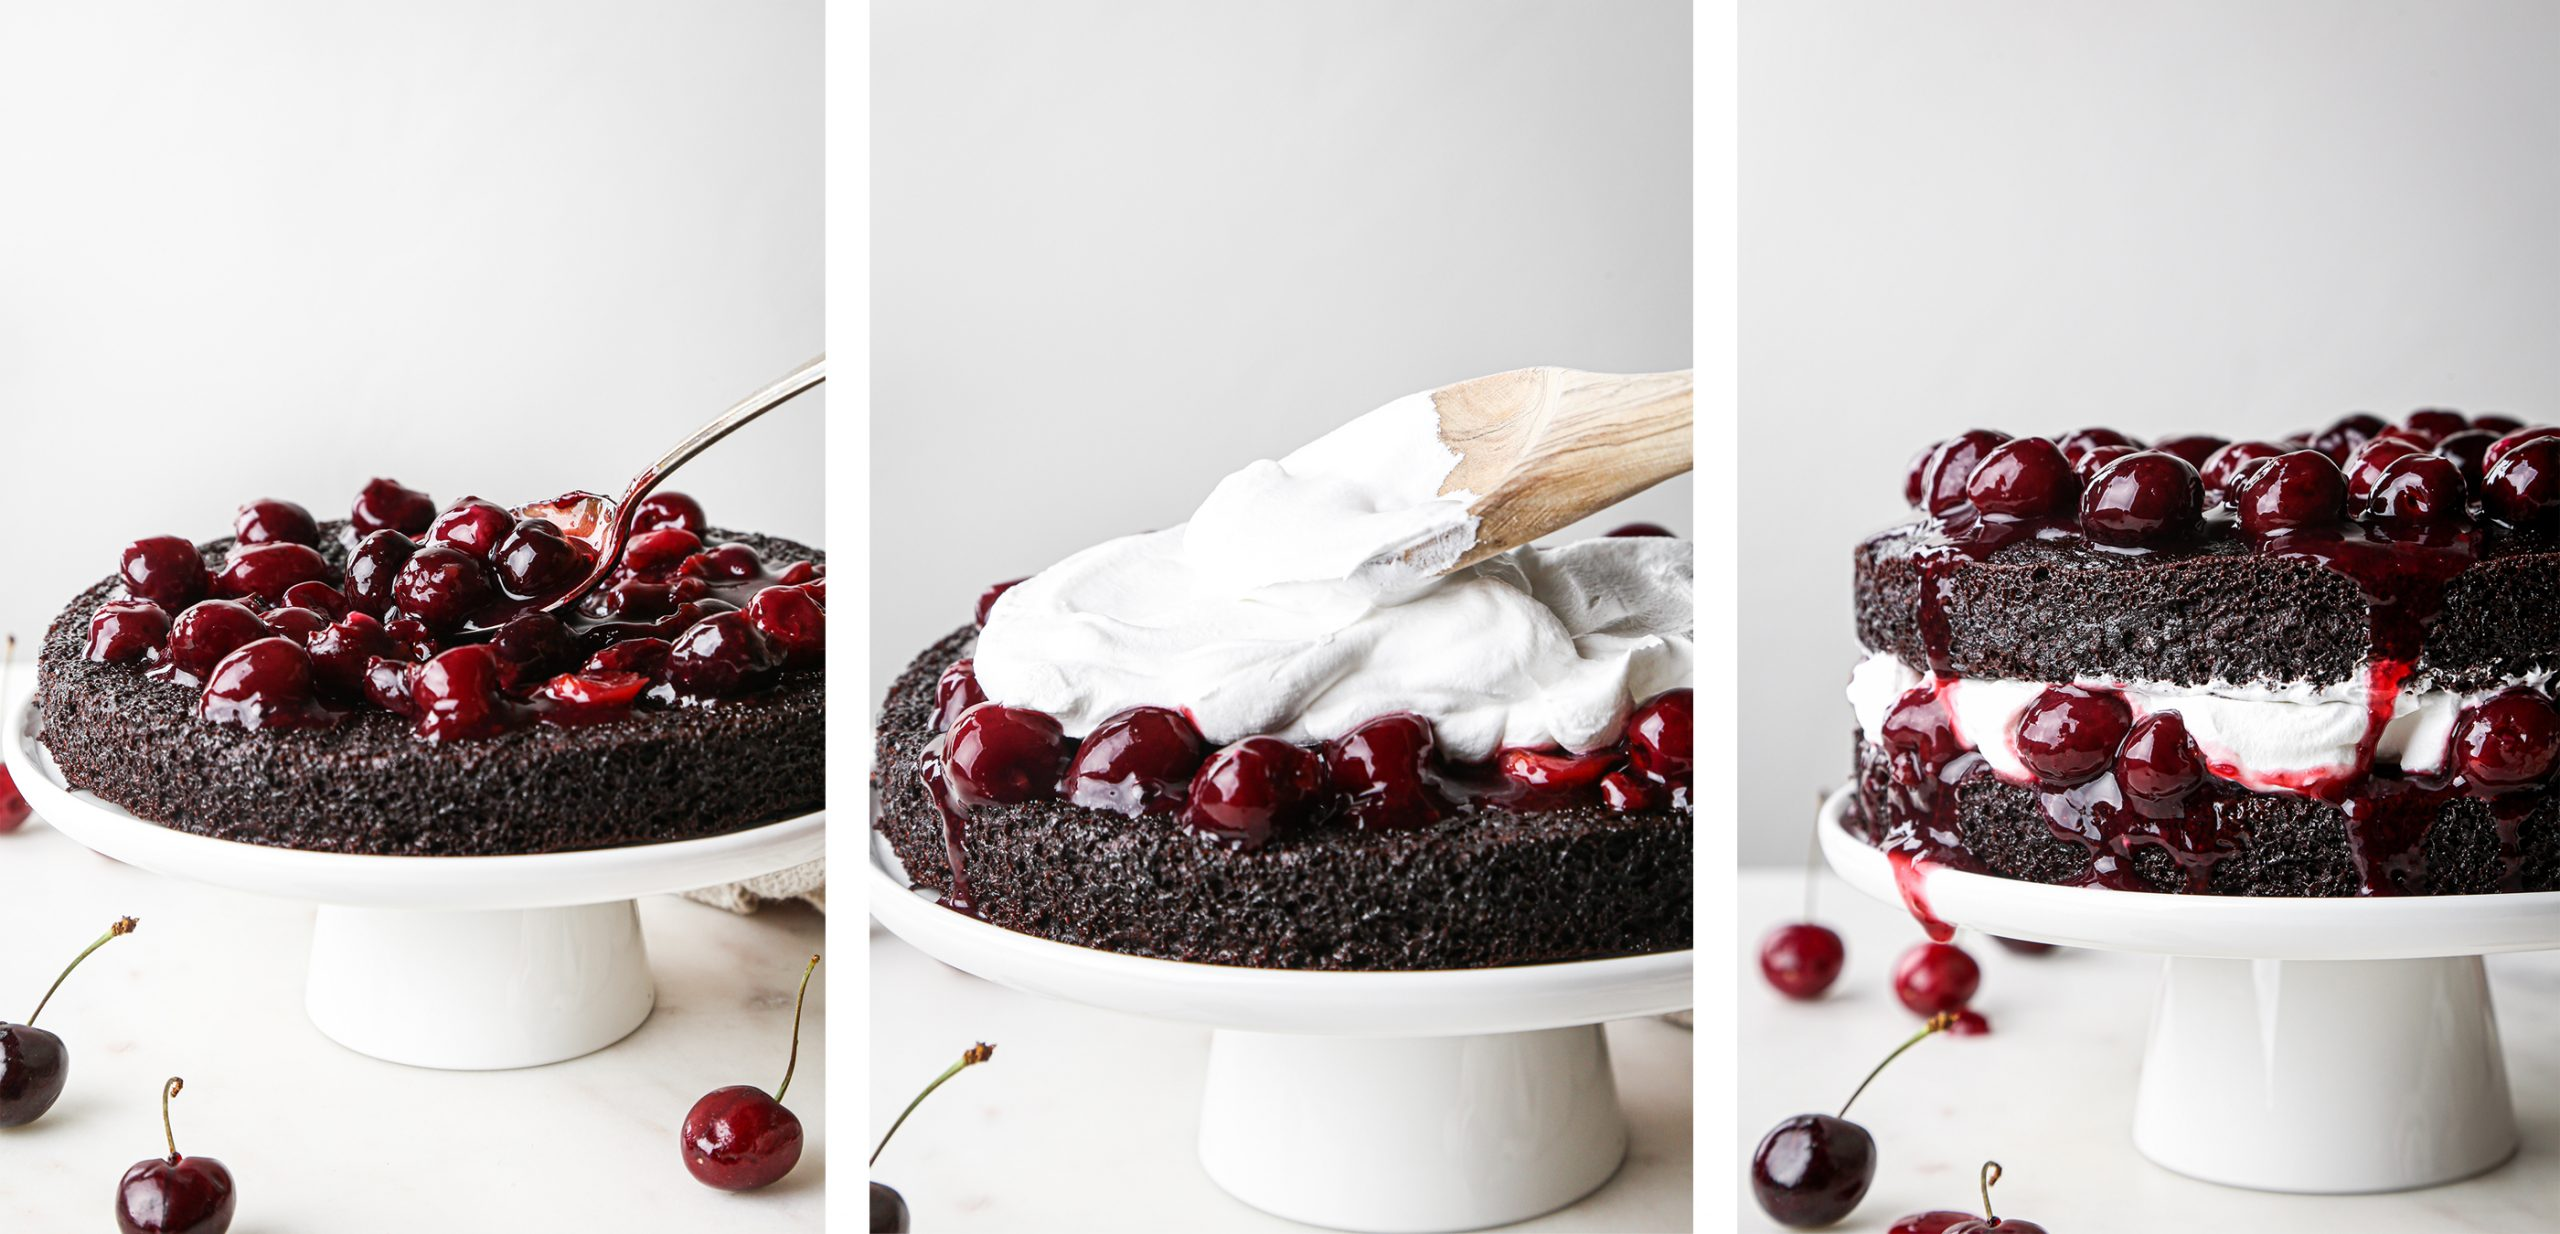 Simple Black Forest Cake Process Photos | Add cherries, top with whipped cream, and repeat